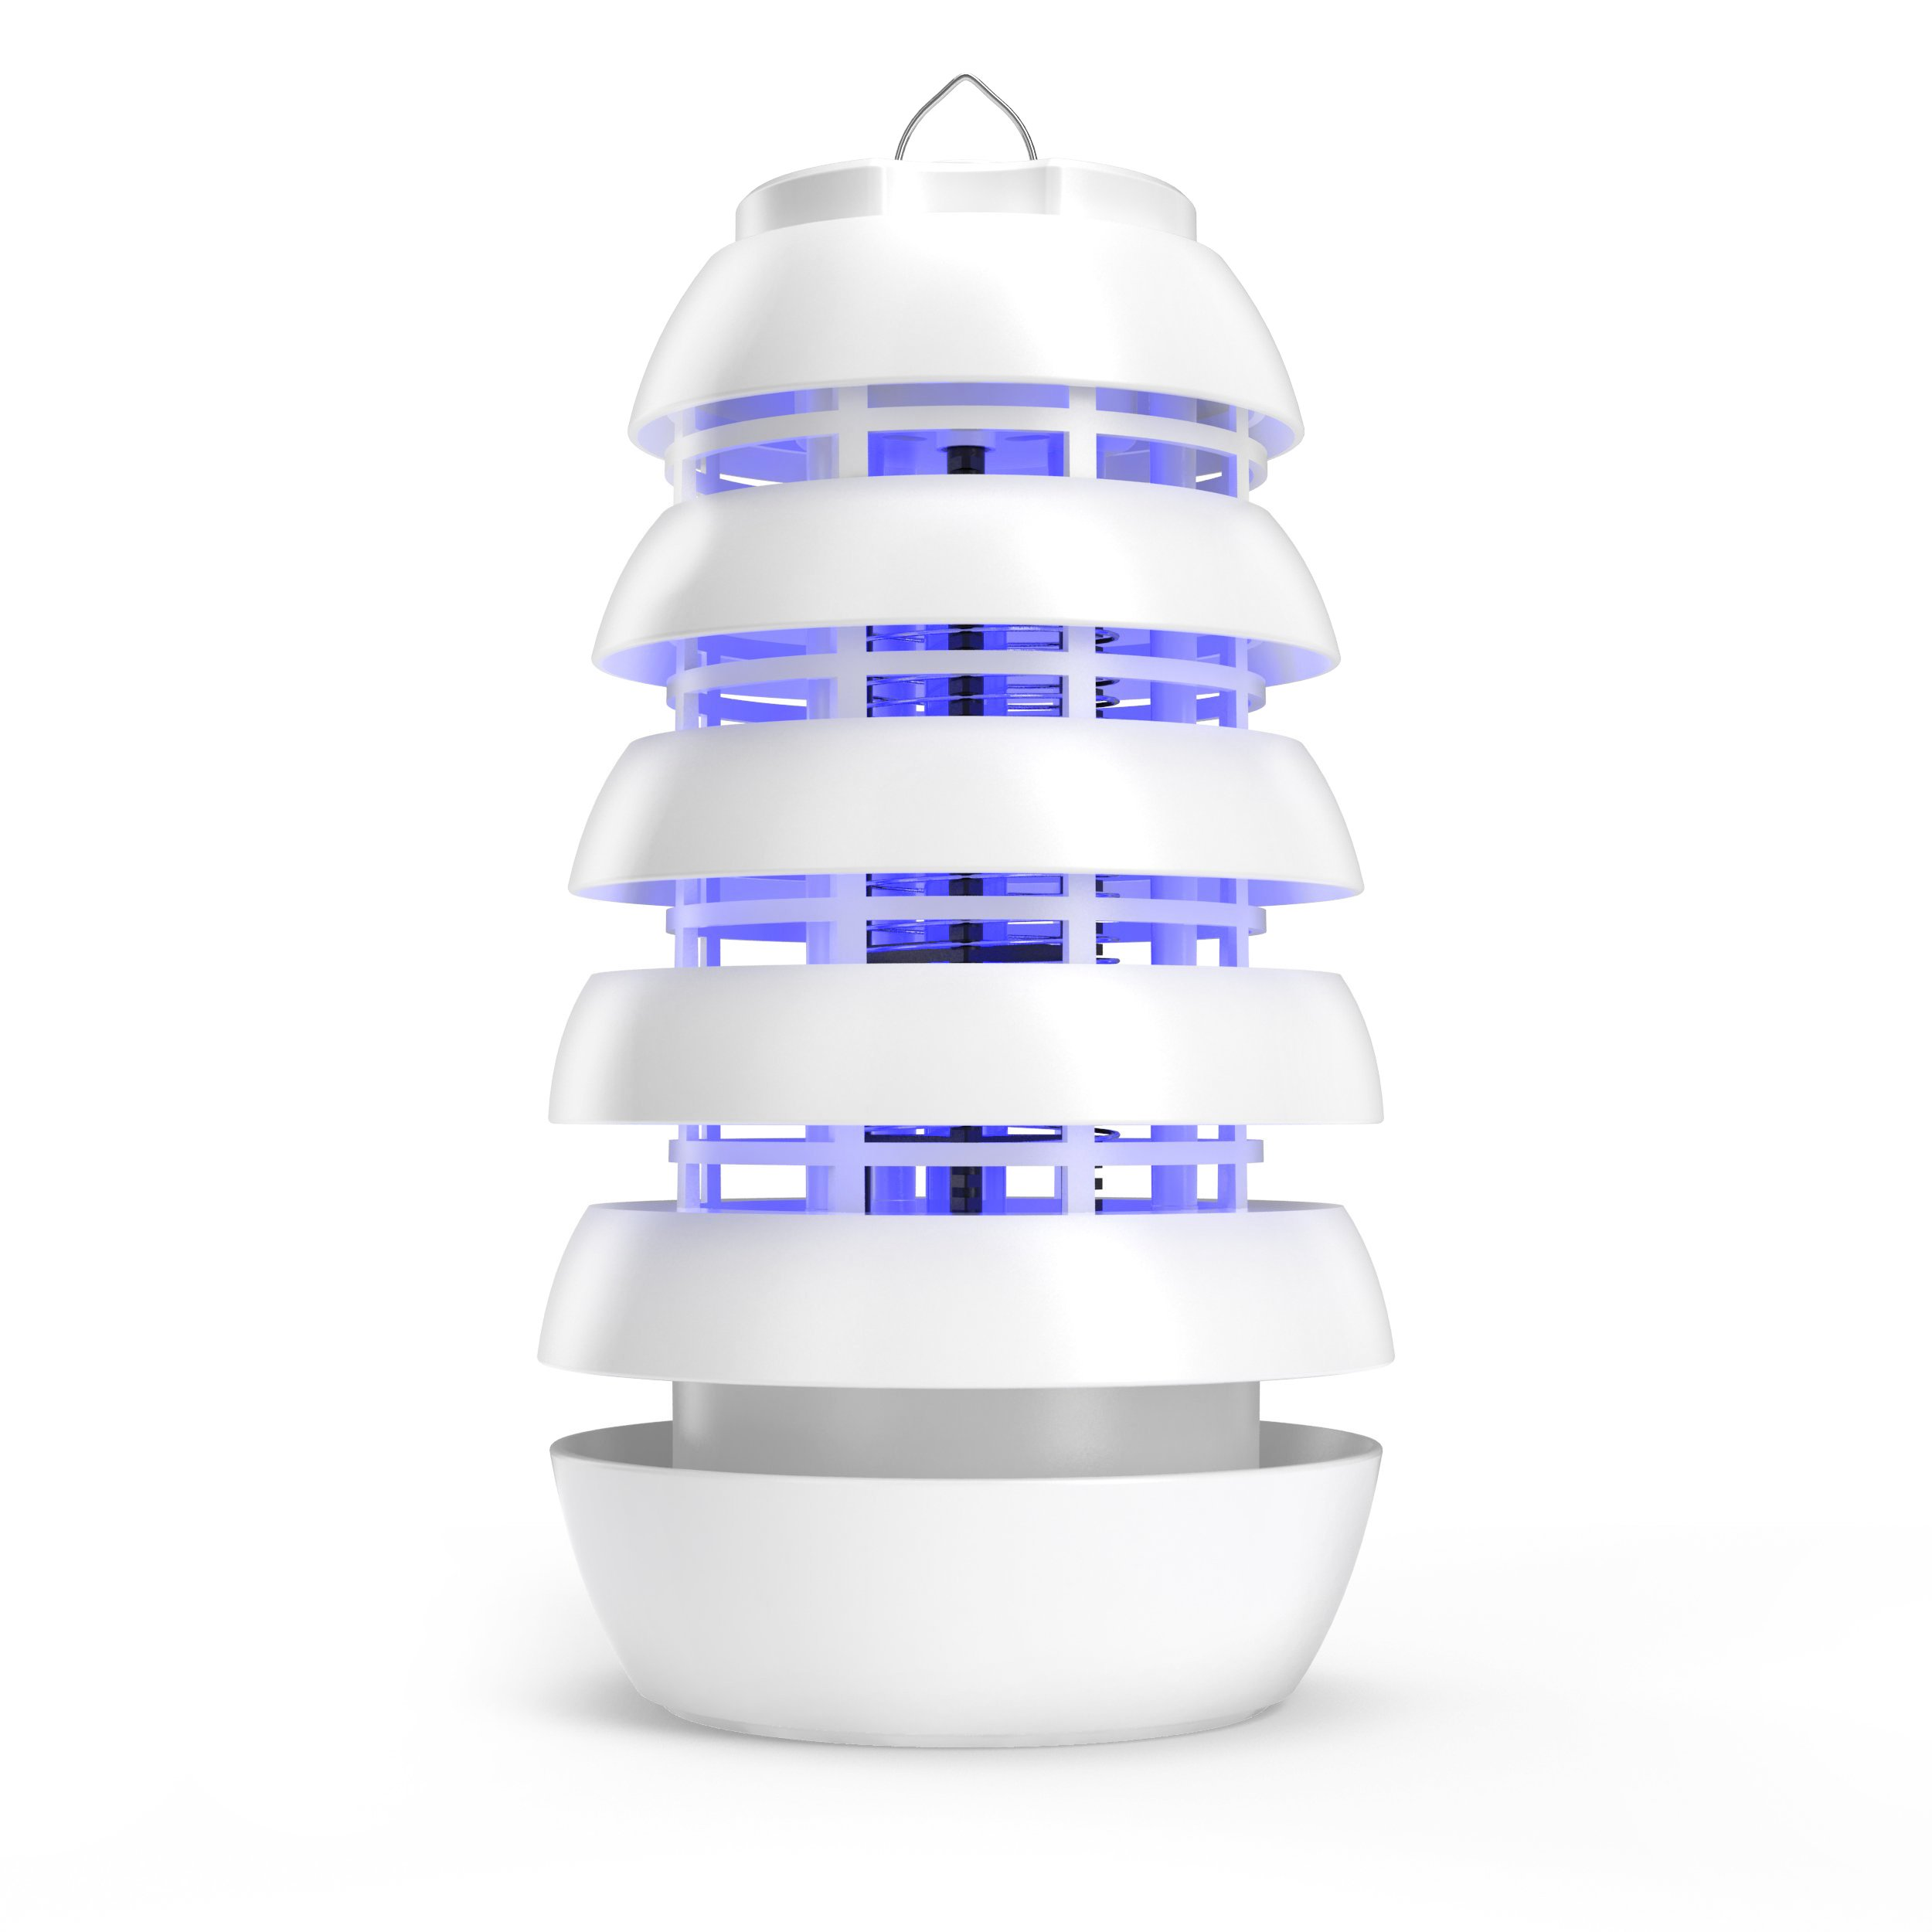 Pure Enrichment Electronic Insect Killer - Improved Indoor/Covered Patio Bug Zapper - Attracts Bugs, Mosquitoes and Other Pests with Safe, Long-Lasting UV LED Light and Titanium Dioxide Coating by Pure Enrichment